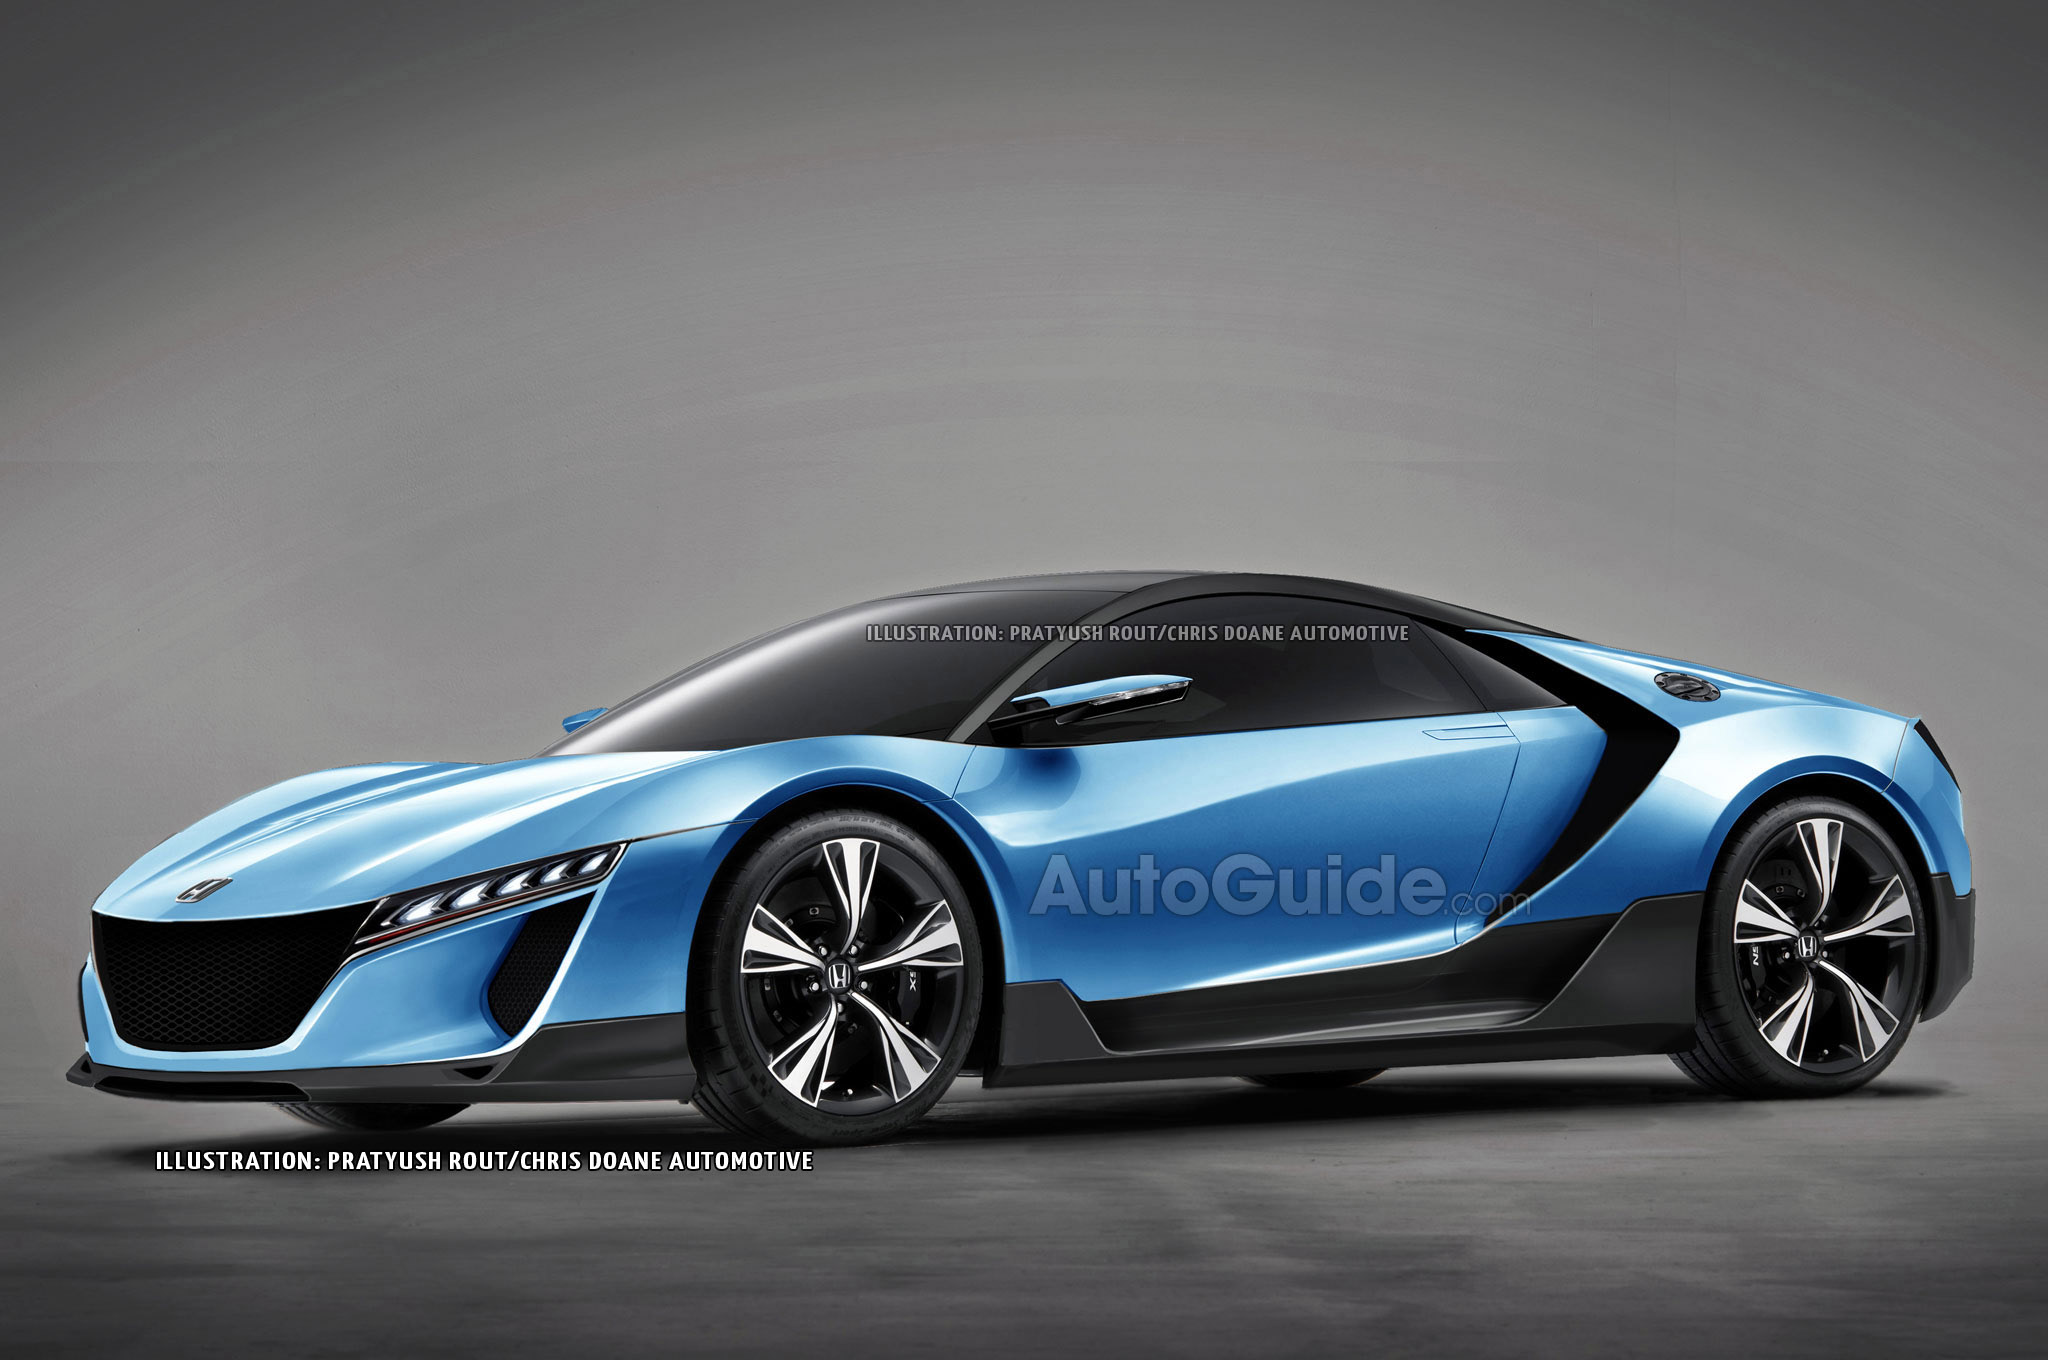 Honda S2000 Successor Could be Coming Sooner Than We Thought ... on